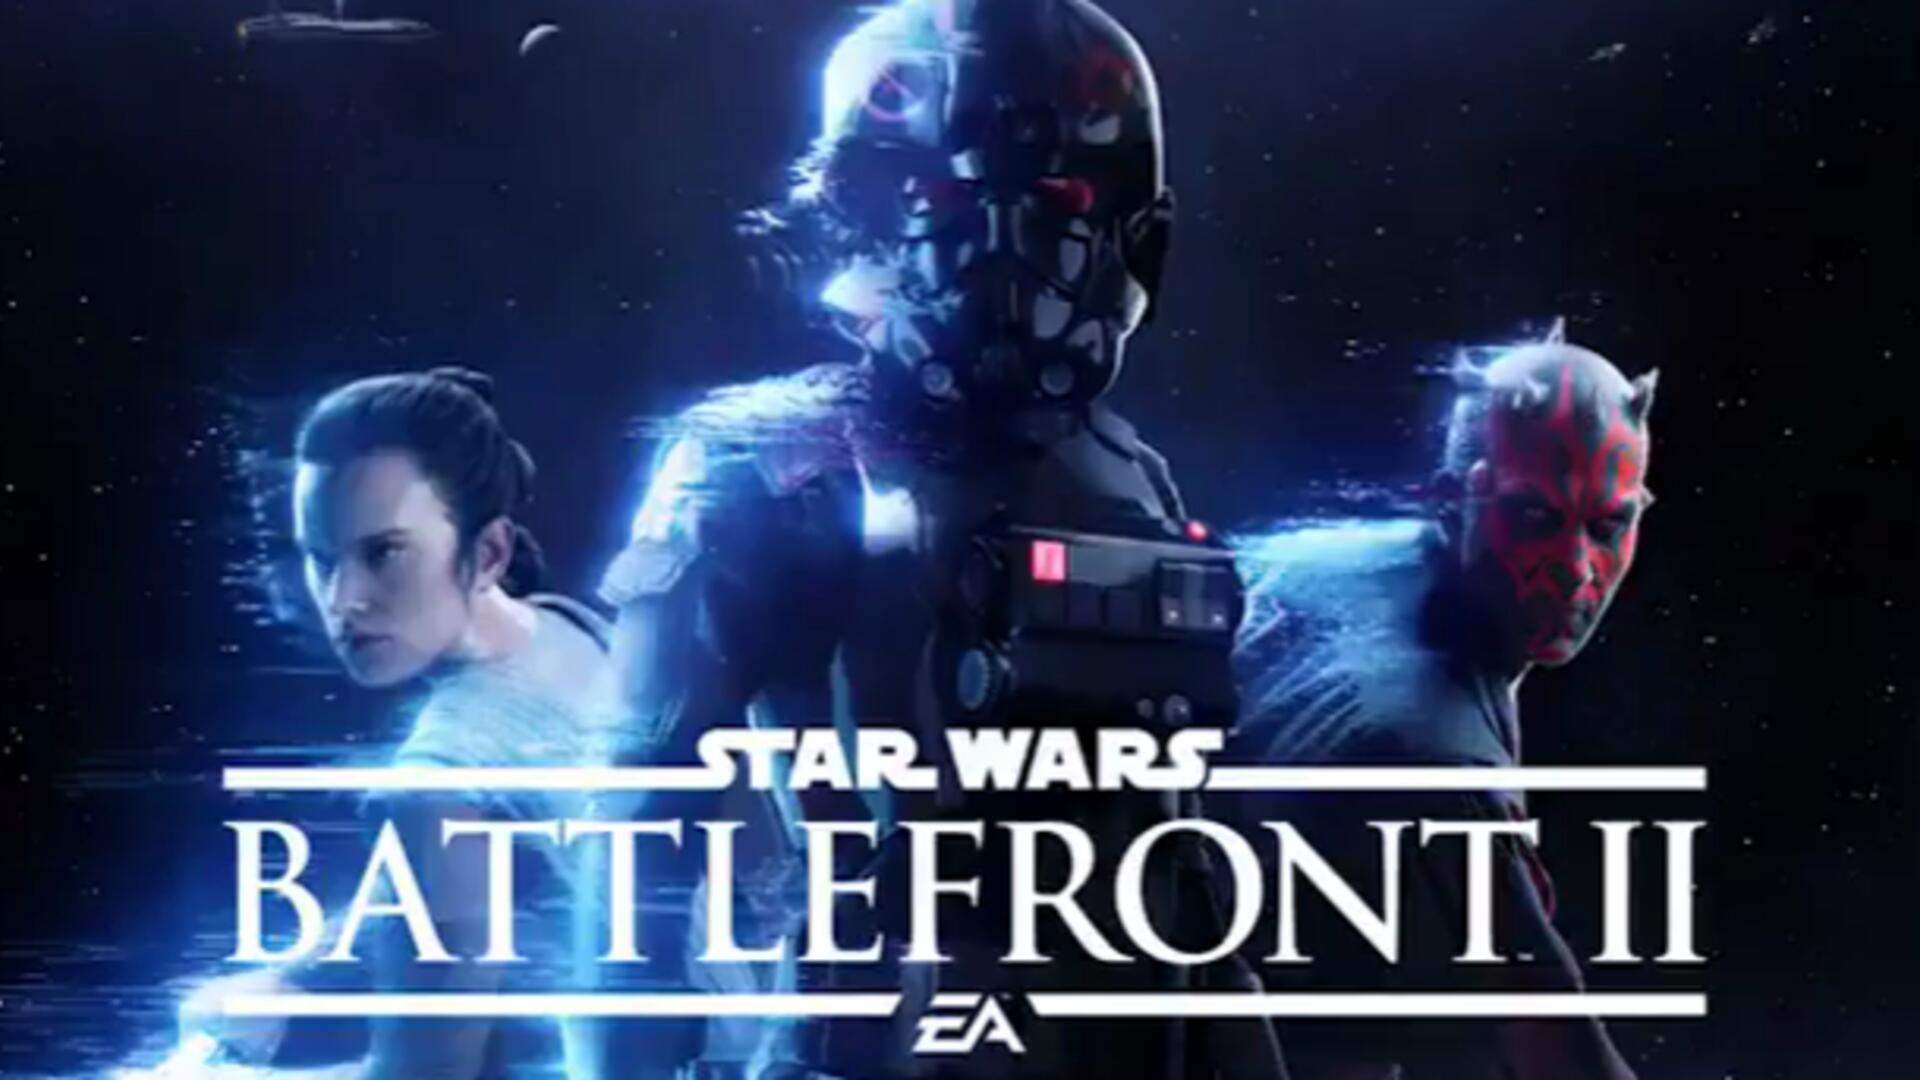 Star Wars Battlefront 2 - Review Roundup, Release Date, Campaign Impressions, Gameplay Reveal, Pre-Order Bonuses, Hero Characters, Unlockables - Everything we Know